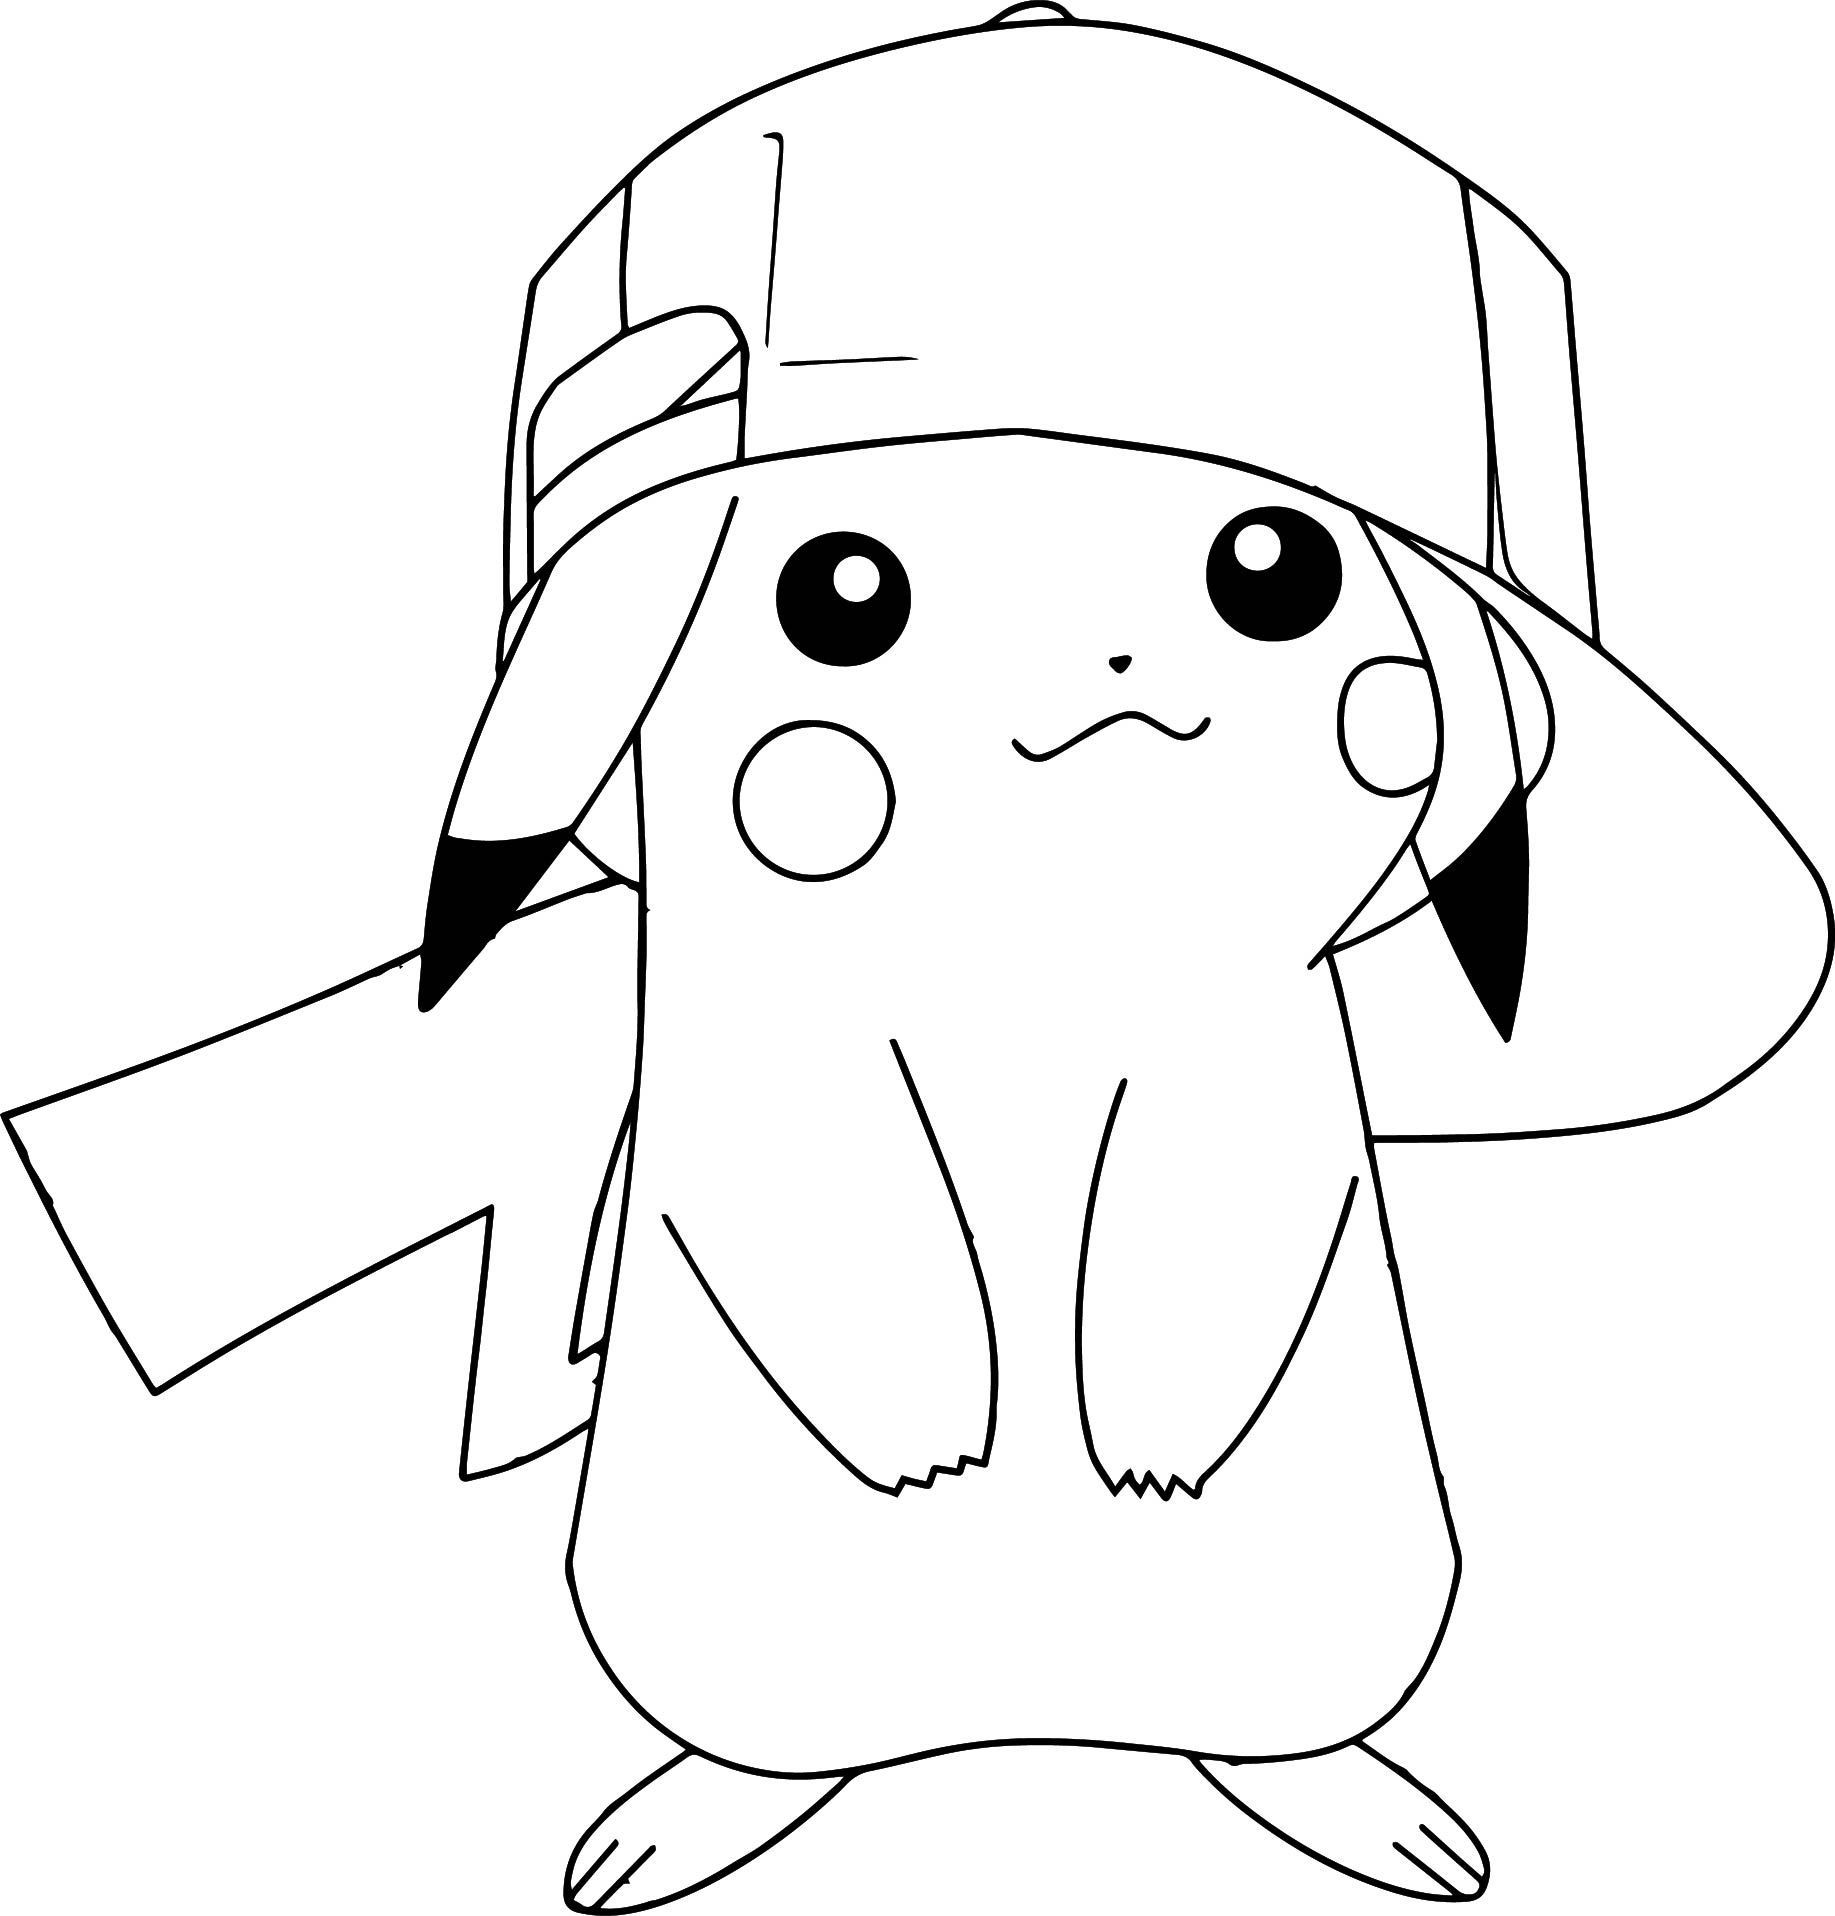 Ausmalbilder Pokemon Glumanda : Pokemon Coloring Pages Pikachu Art Colorings Drawings Etc